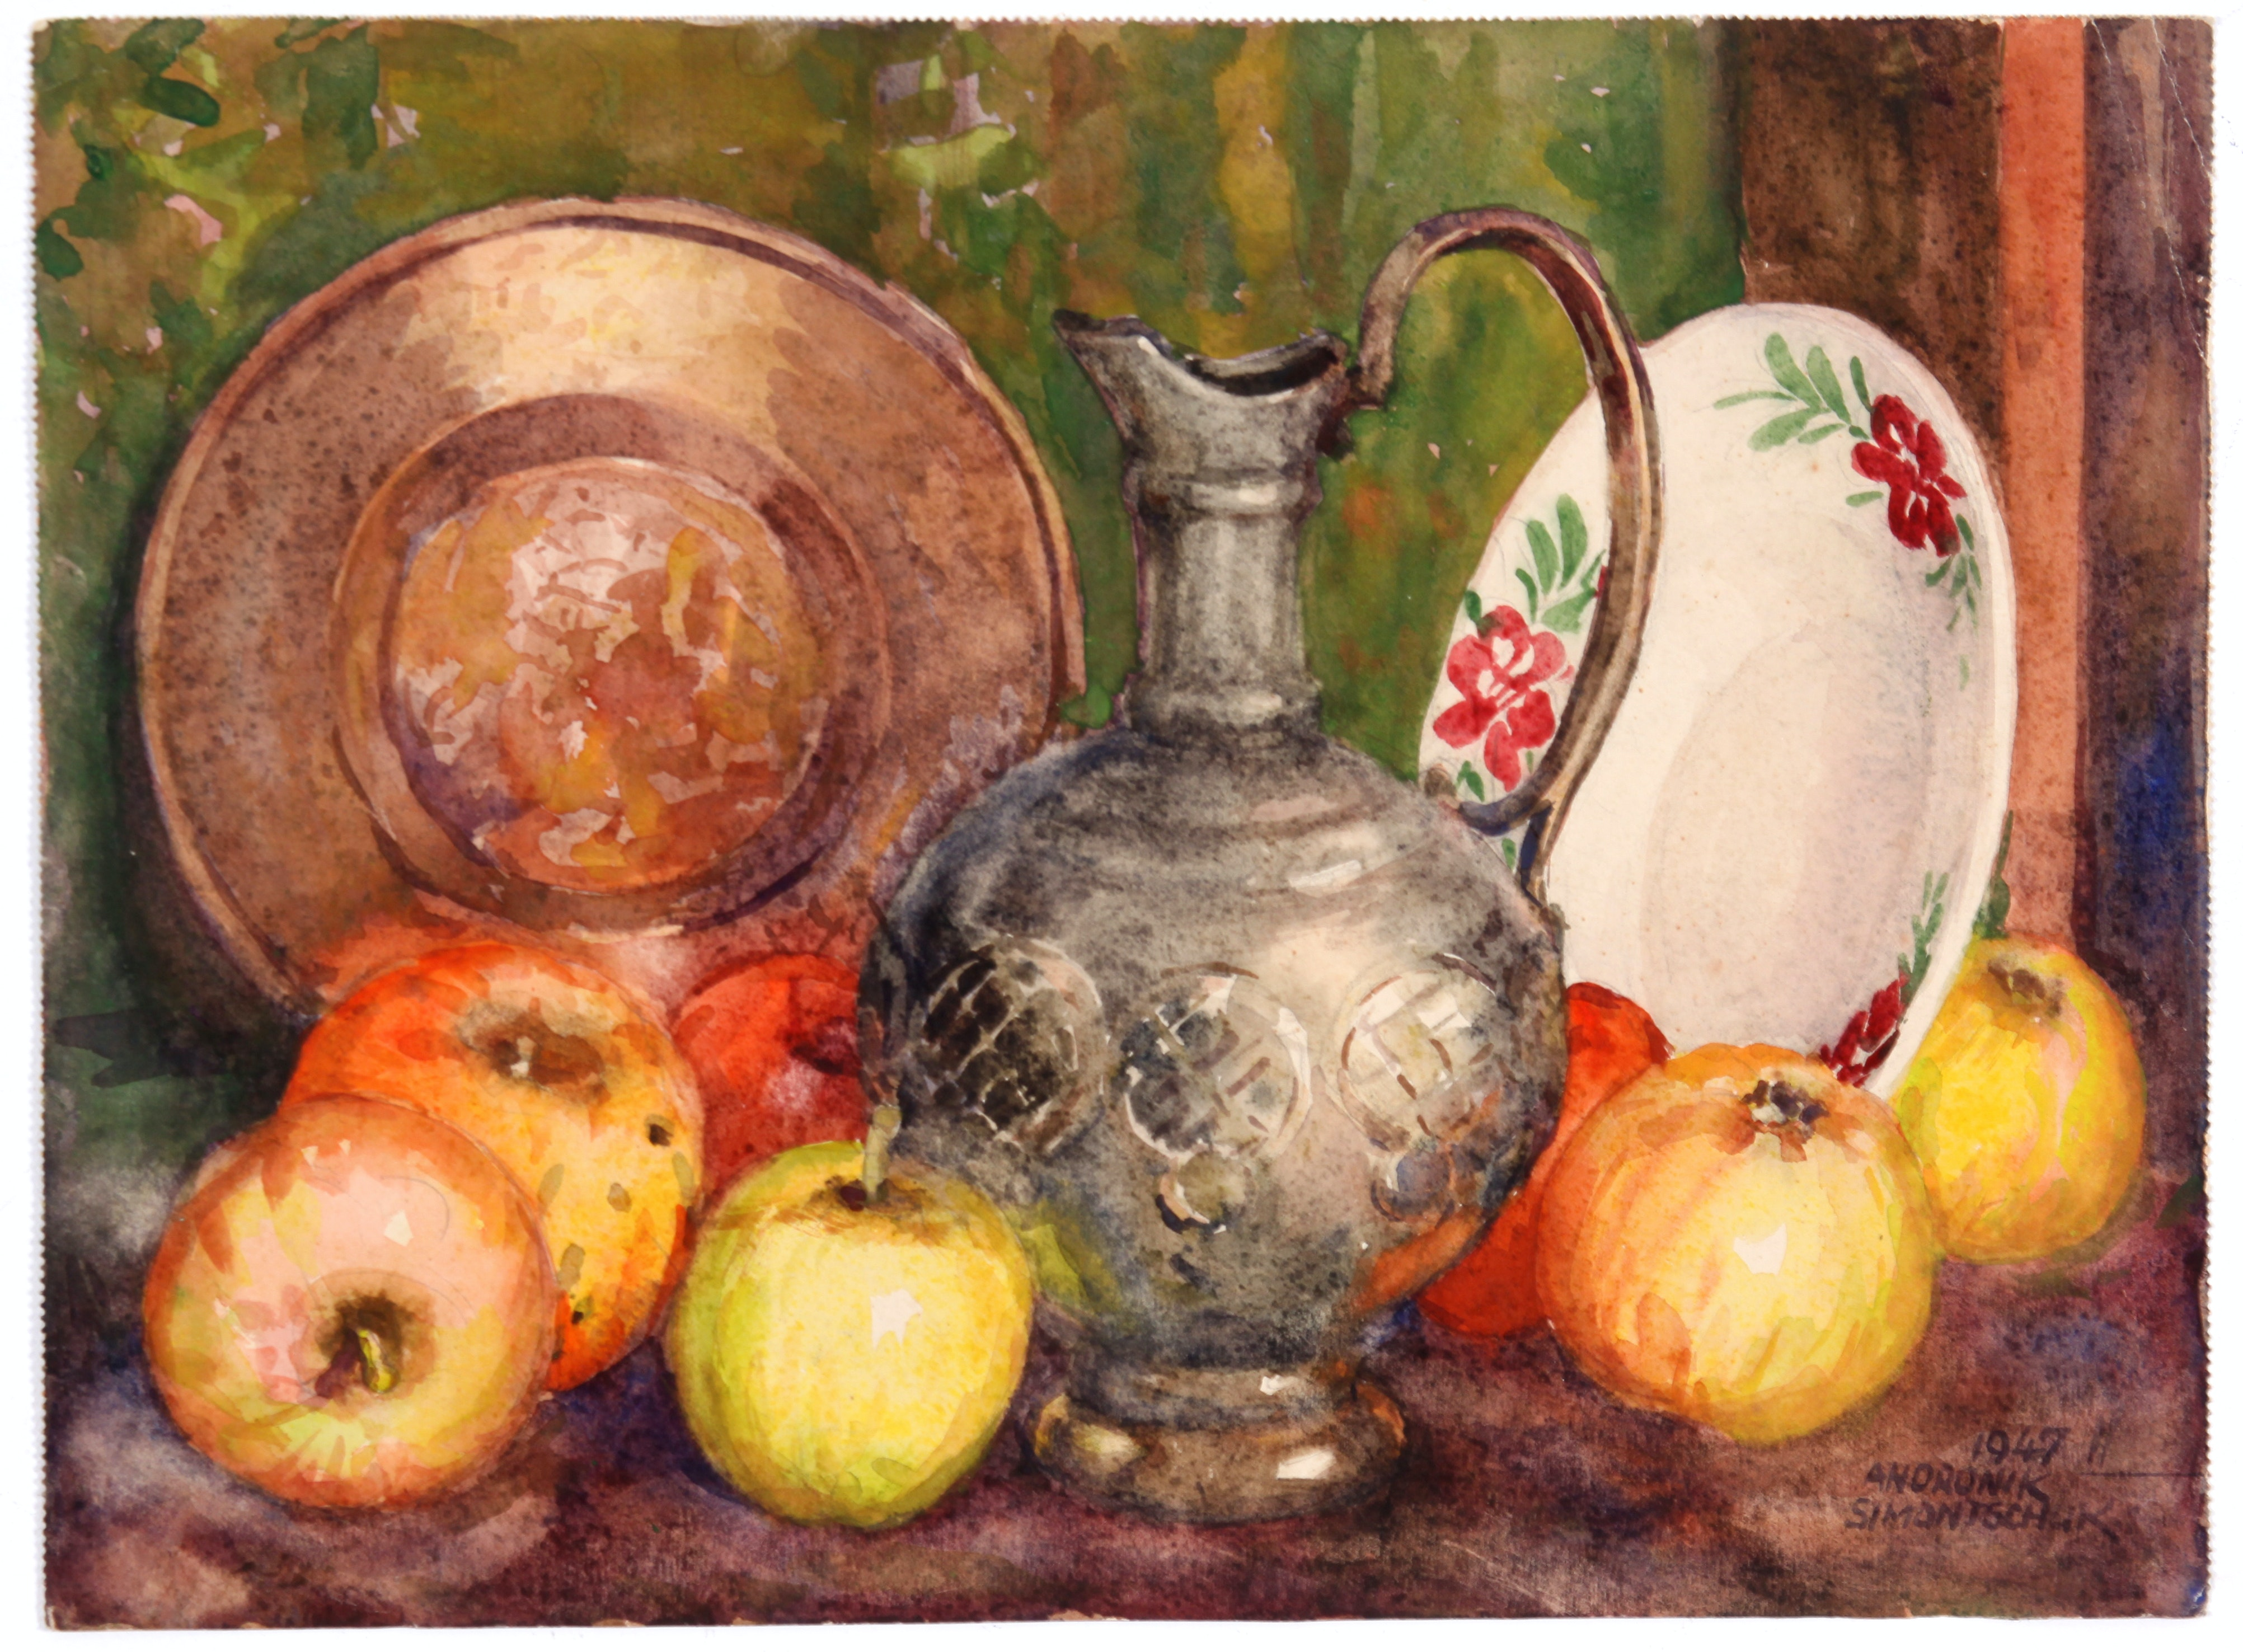 Original Still Life in Watercolor by Andronik Simontschuk